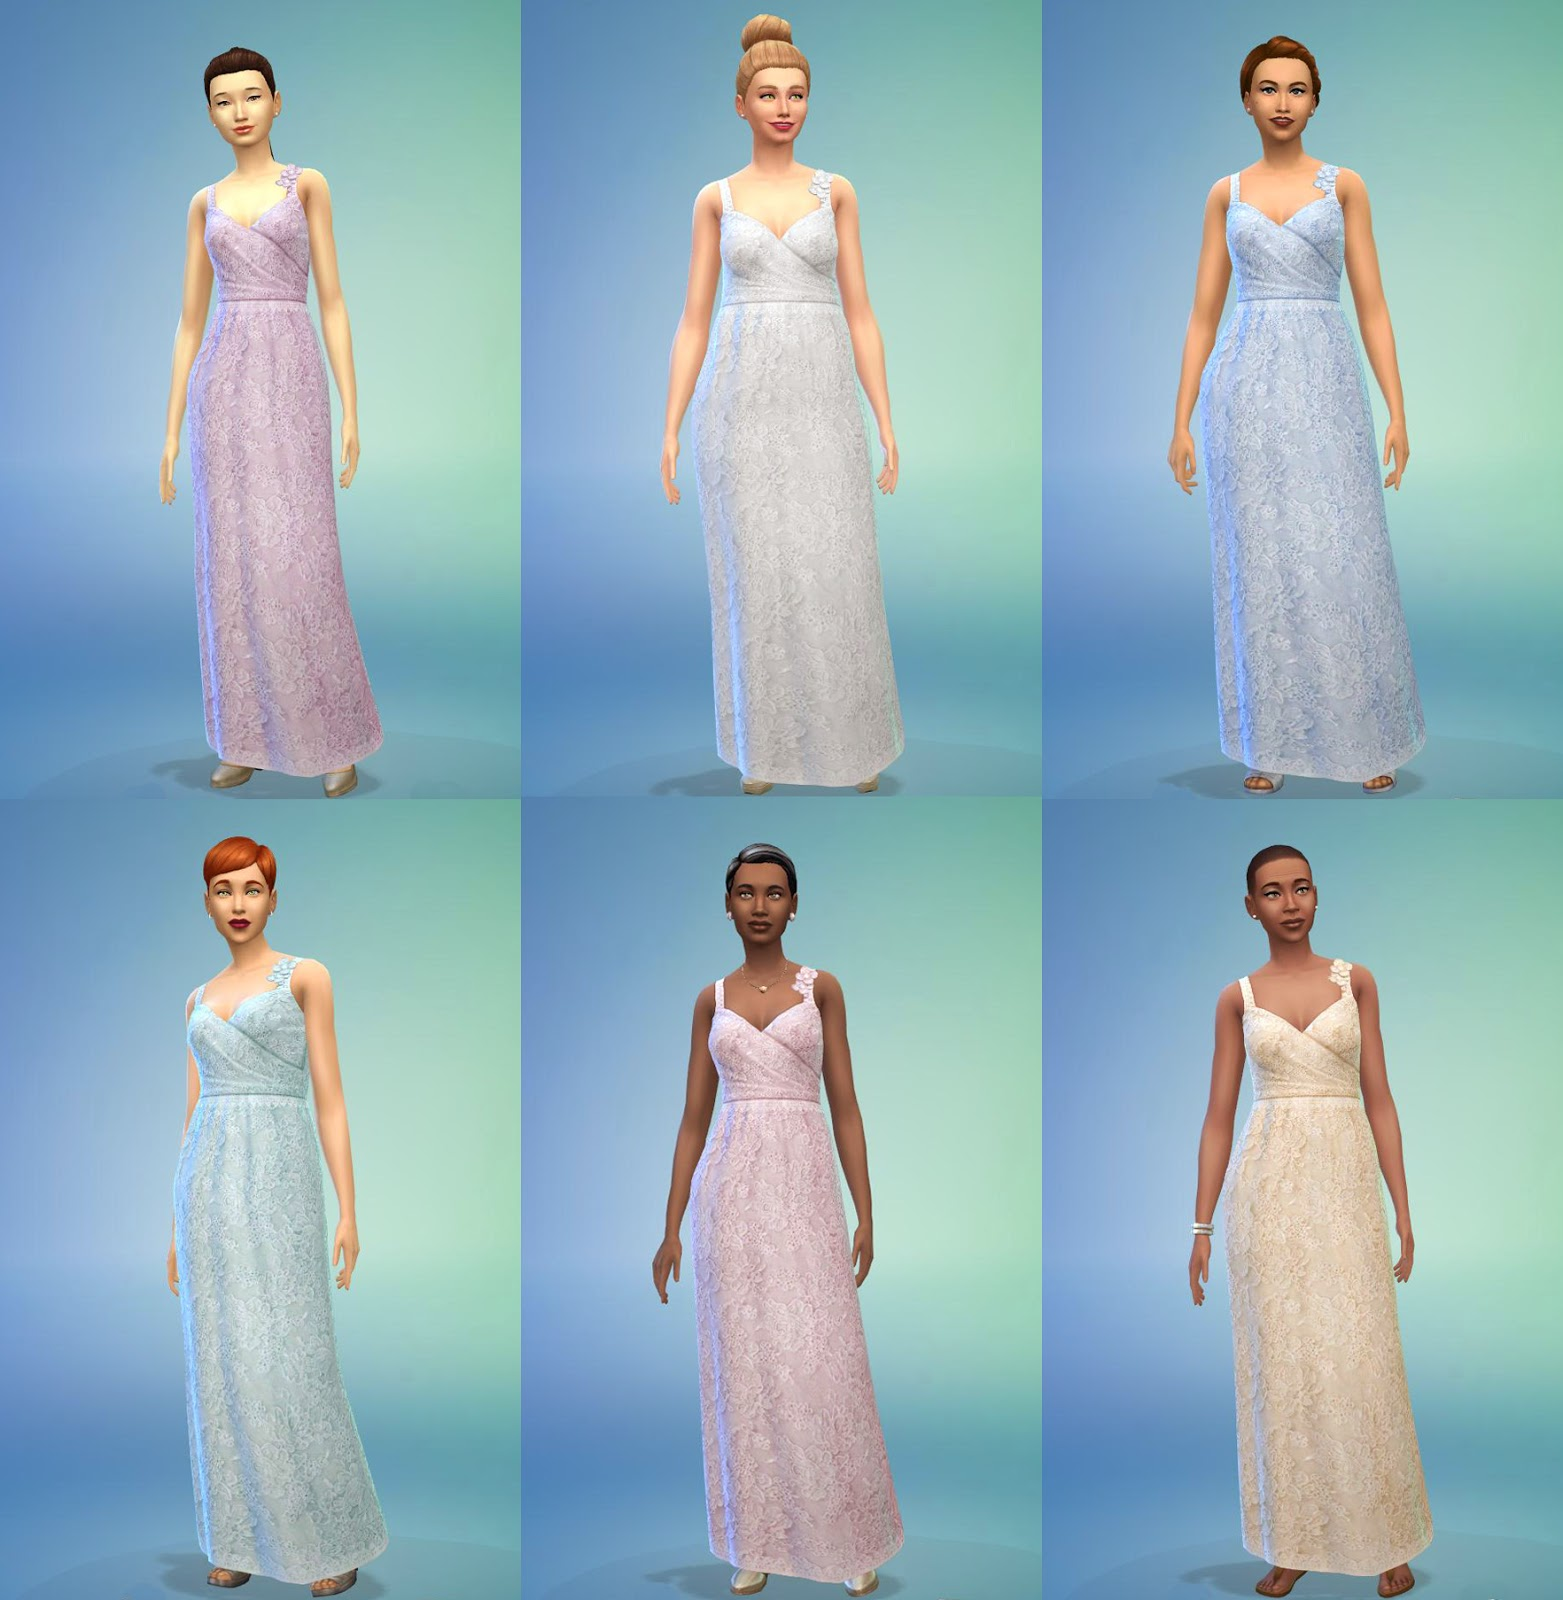 Marie\'s Sims: Non-Default Wedding Gowns for the Sims 4